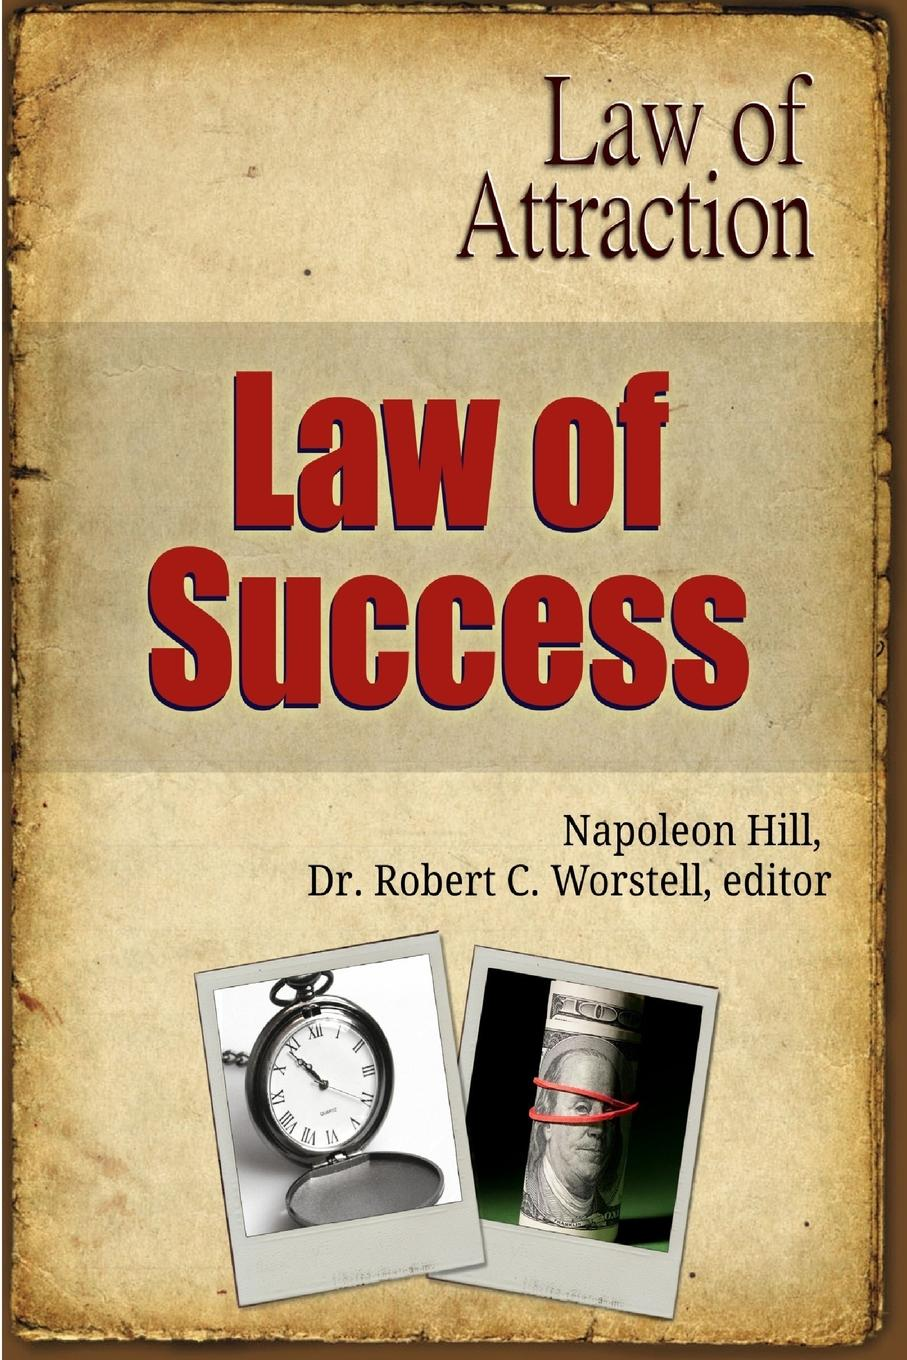 editor Dr. Robert C. Worstell, Napoleon Hill Law of Success - Law of Attraction aaron hill the circle blueprint decoding the conscious and unconscious factors that determine your success